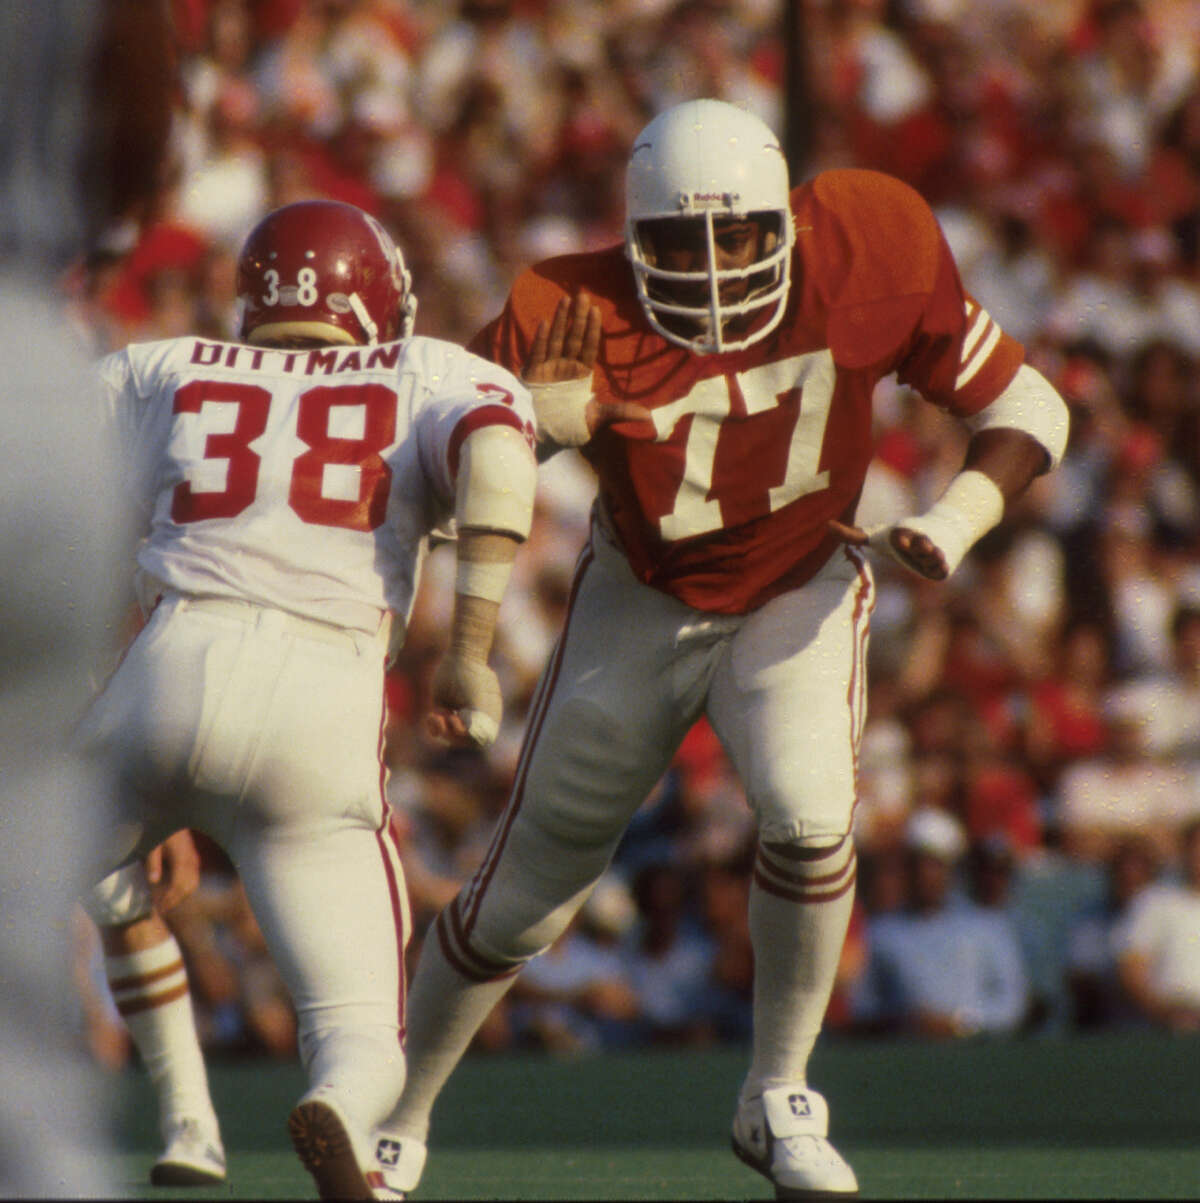 Kenneth Sims, former University of Texas defensive lineman, was named to the College Football Hall of Fame Class of 2021